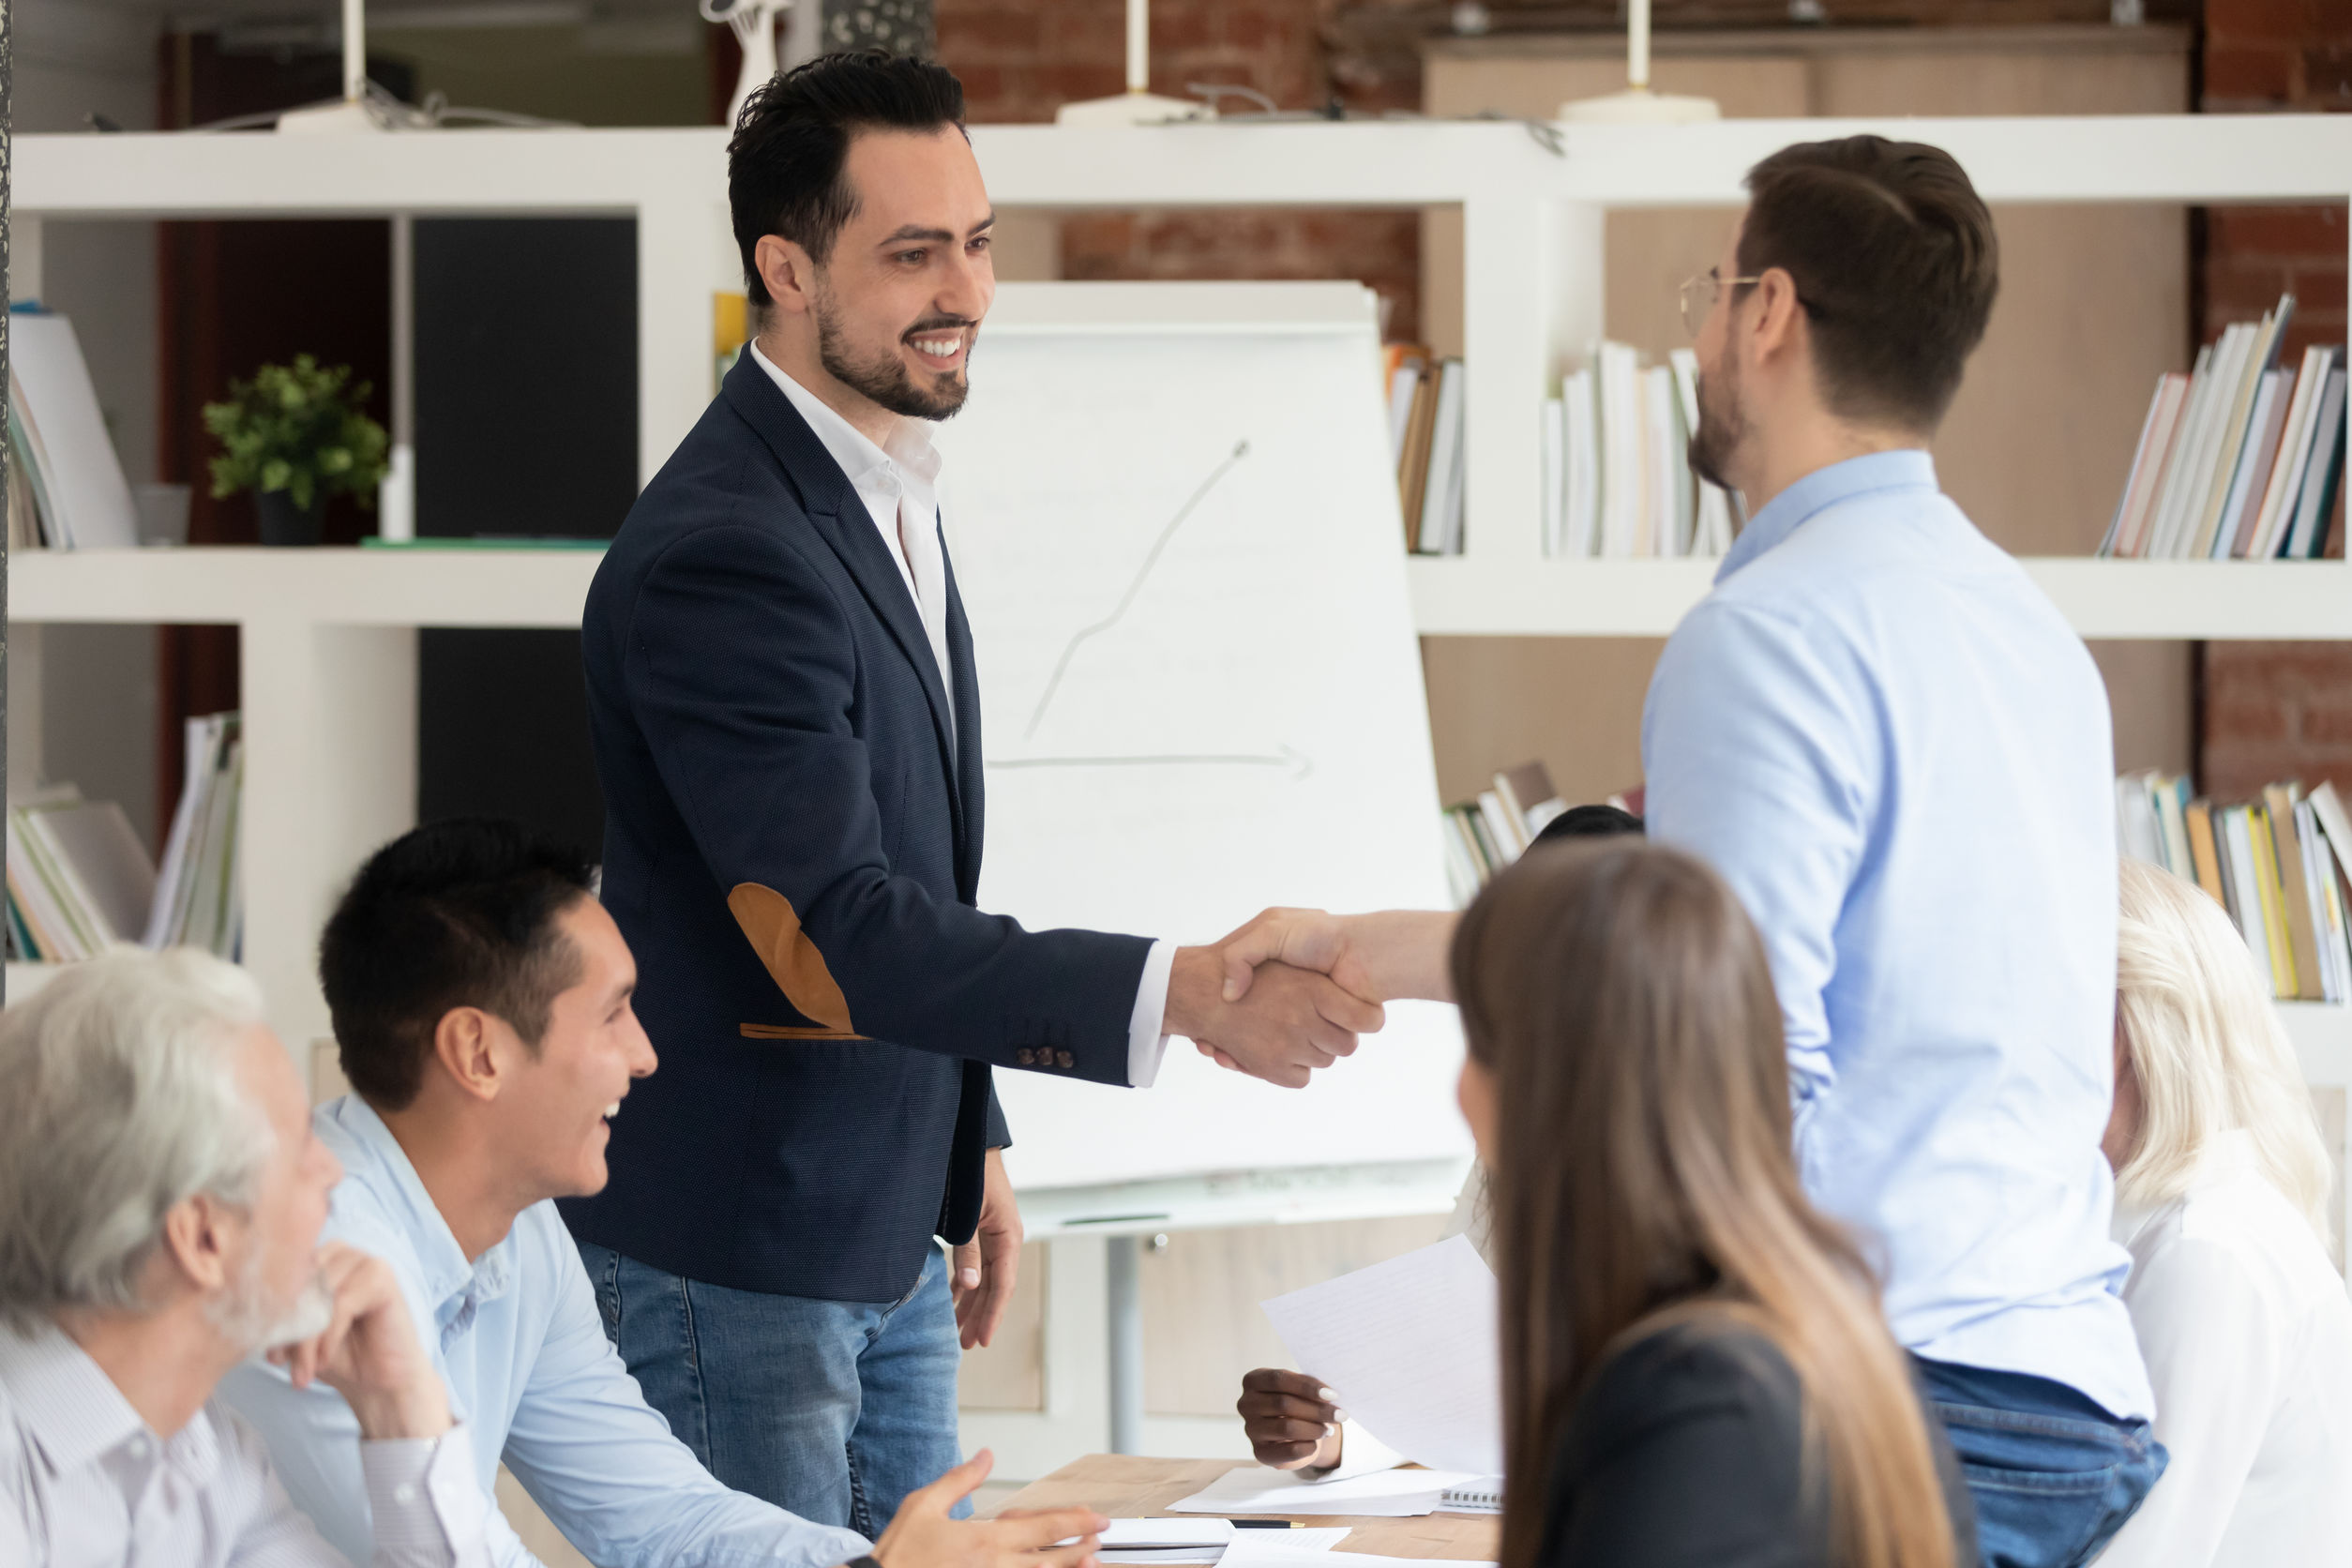 How to Start Building Employee Loyalty